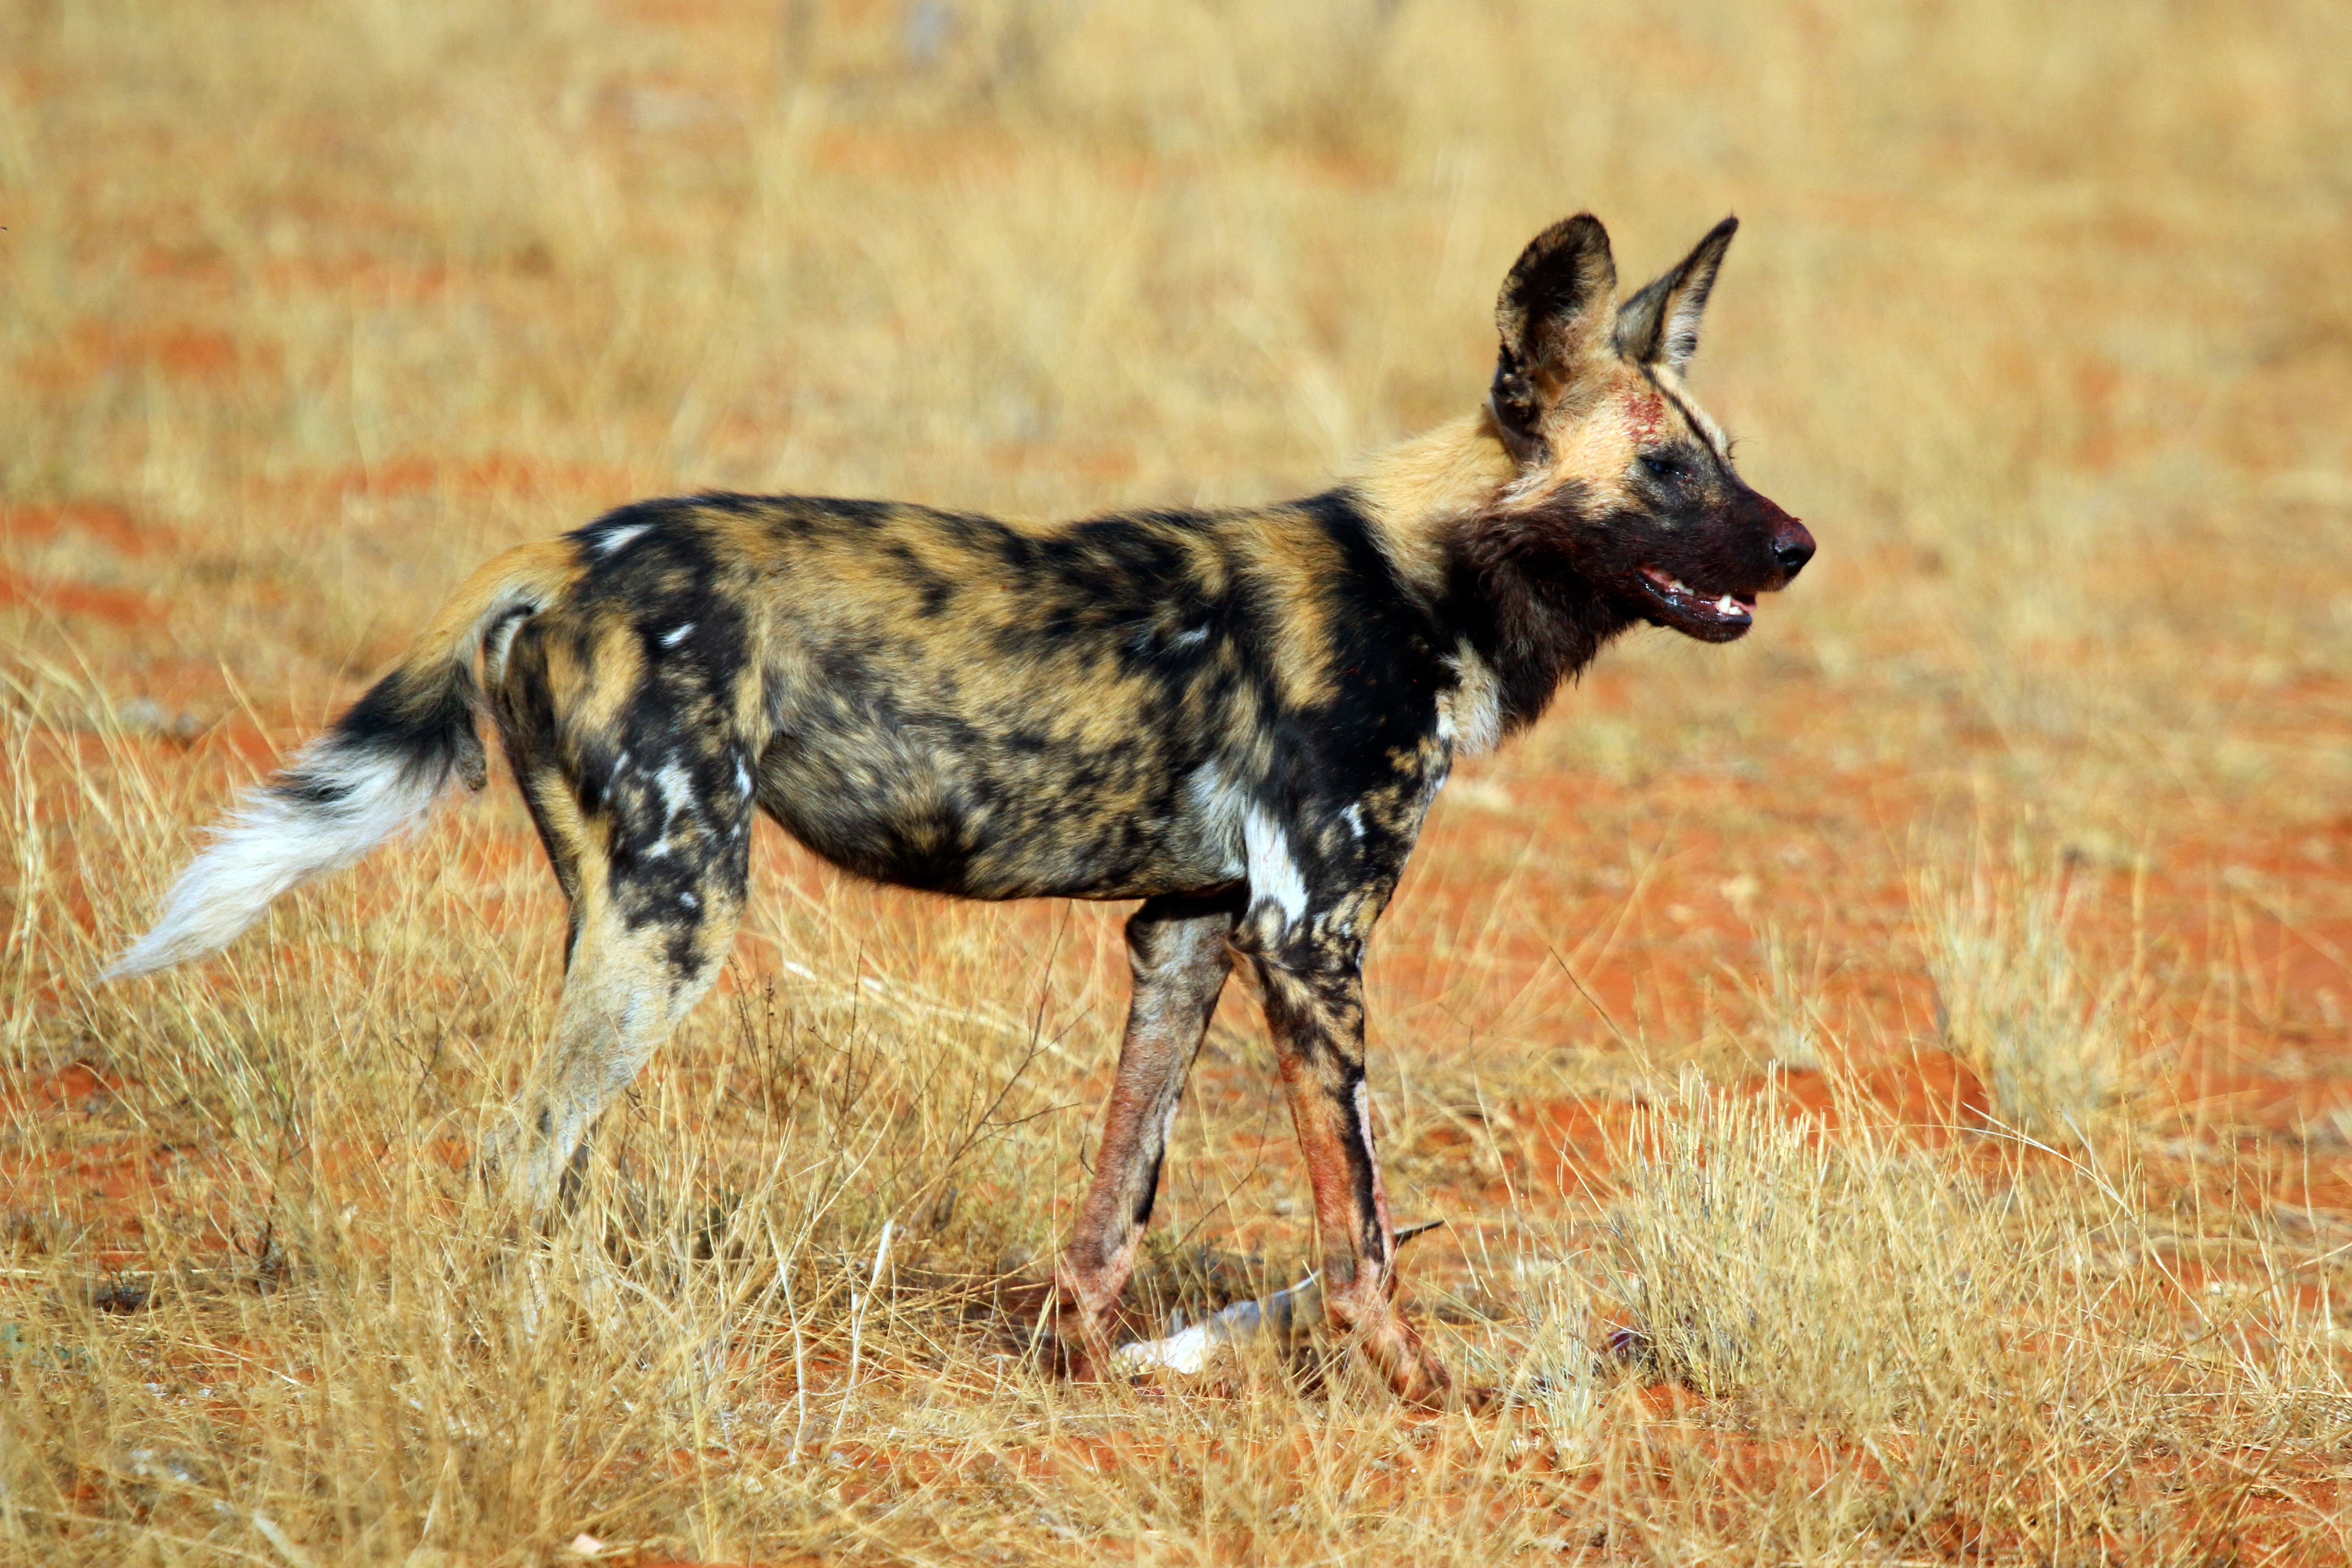 African wild dog can run 35 miles